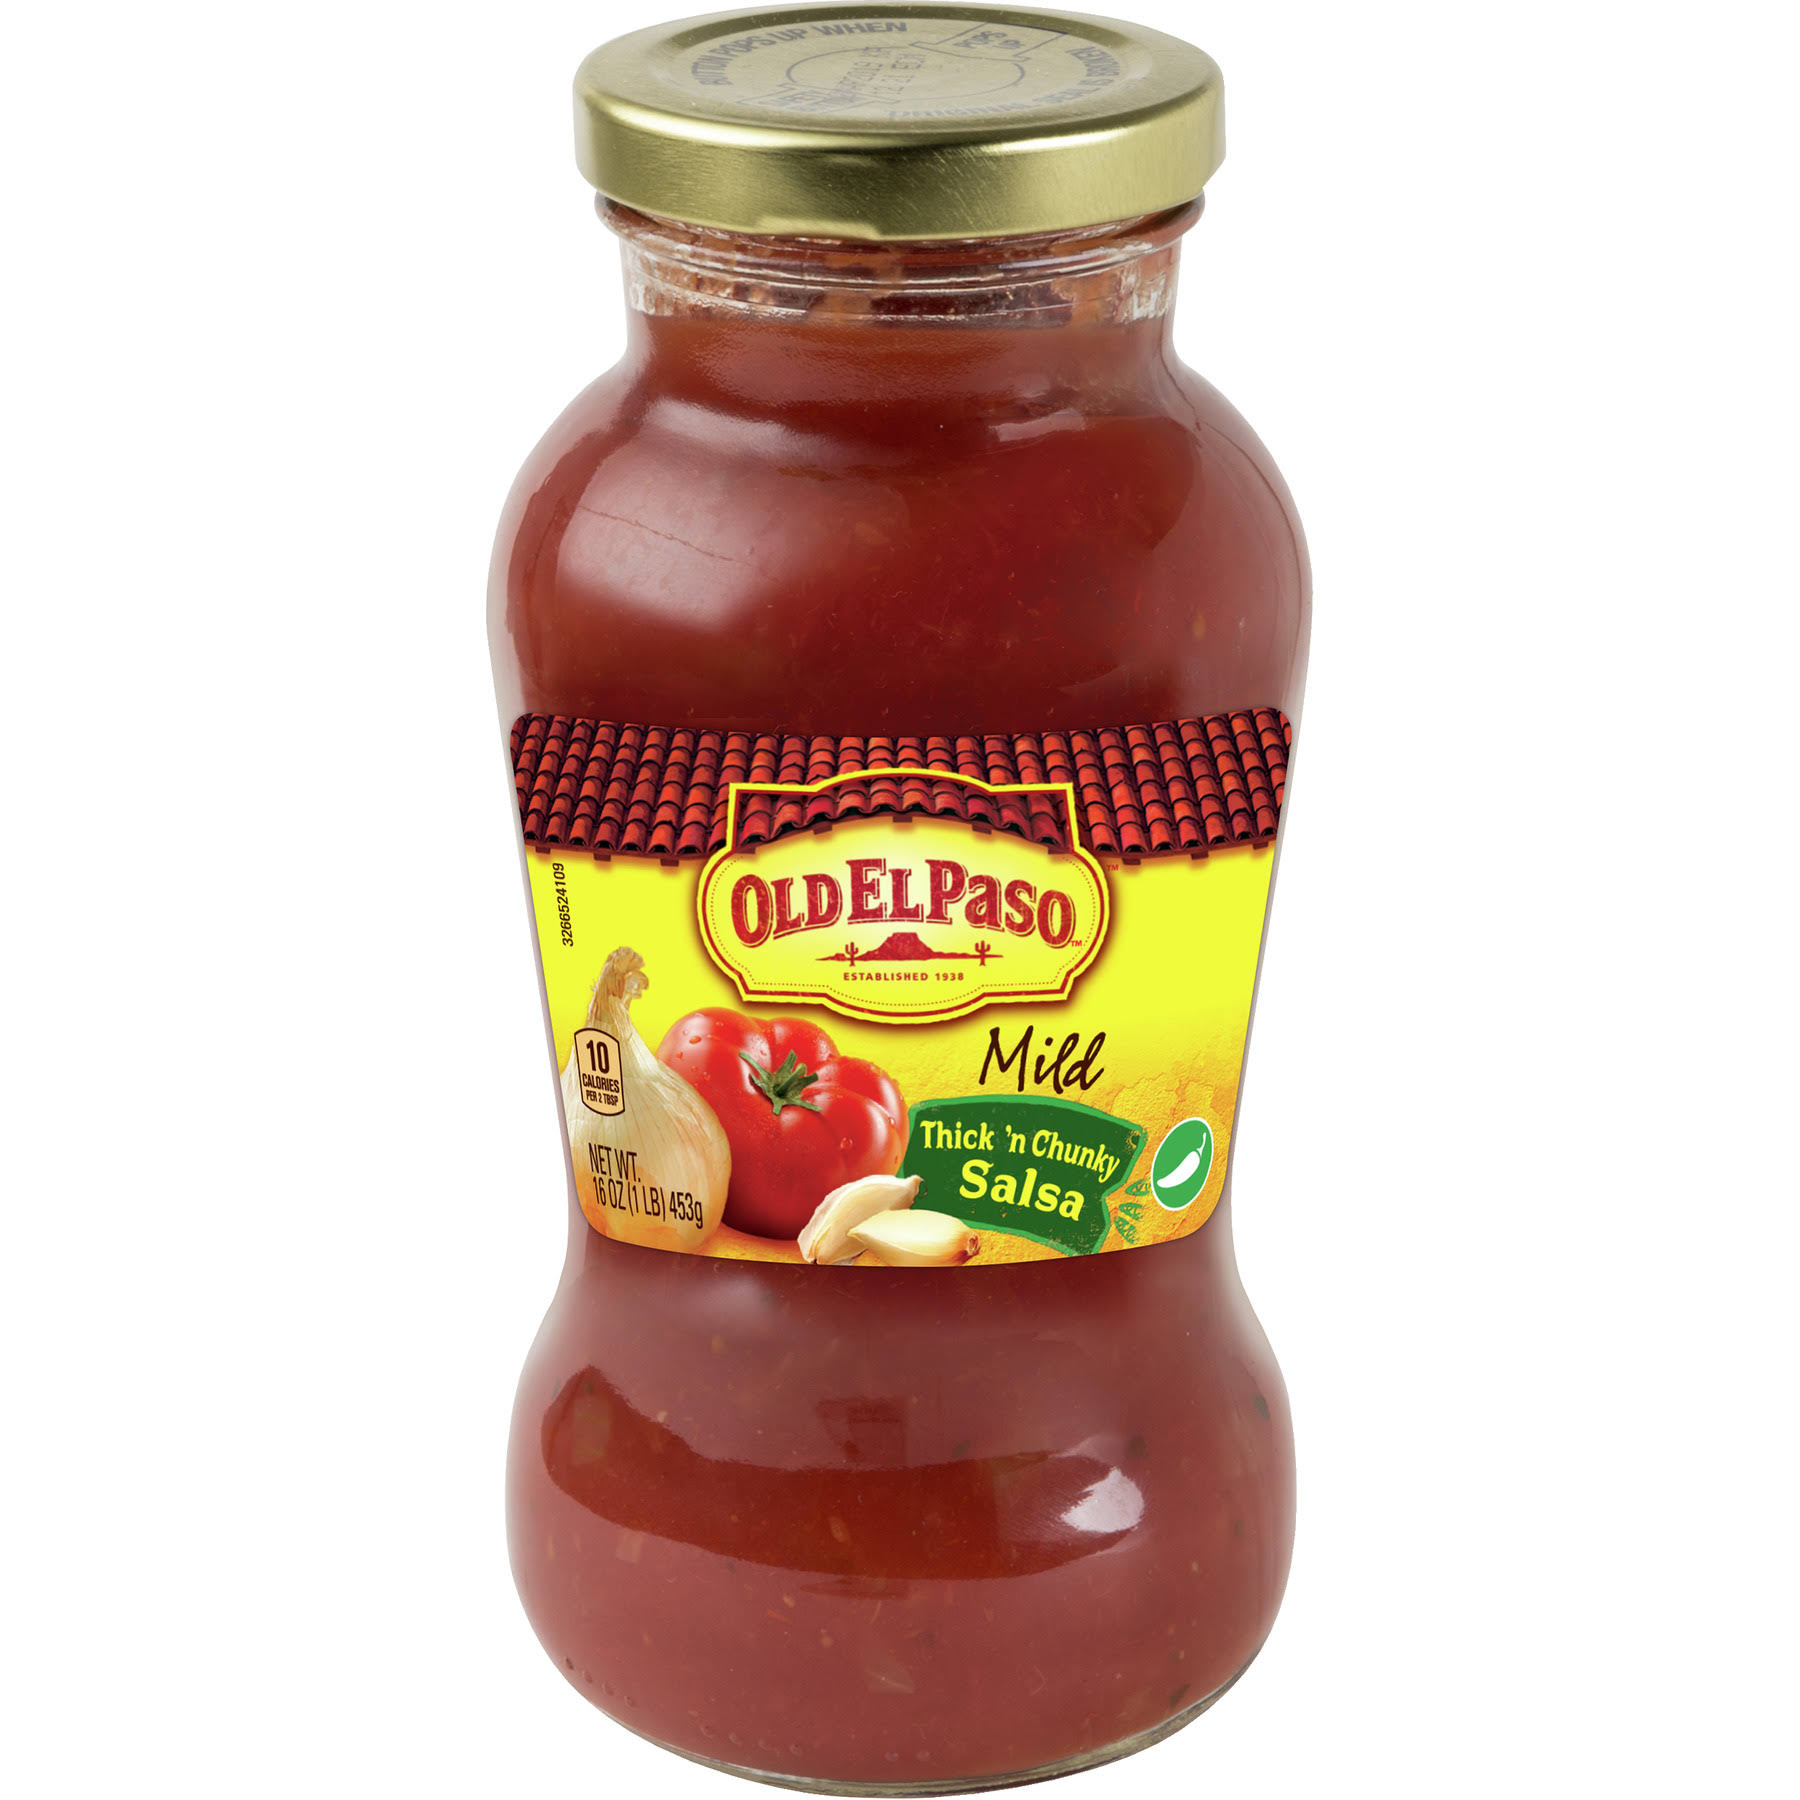 Old El Paso Salsa, Thick 'n Chunky, Mild - 16 oz